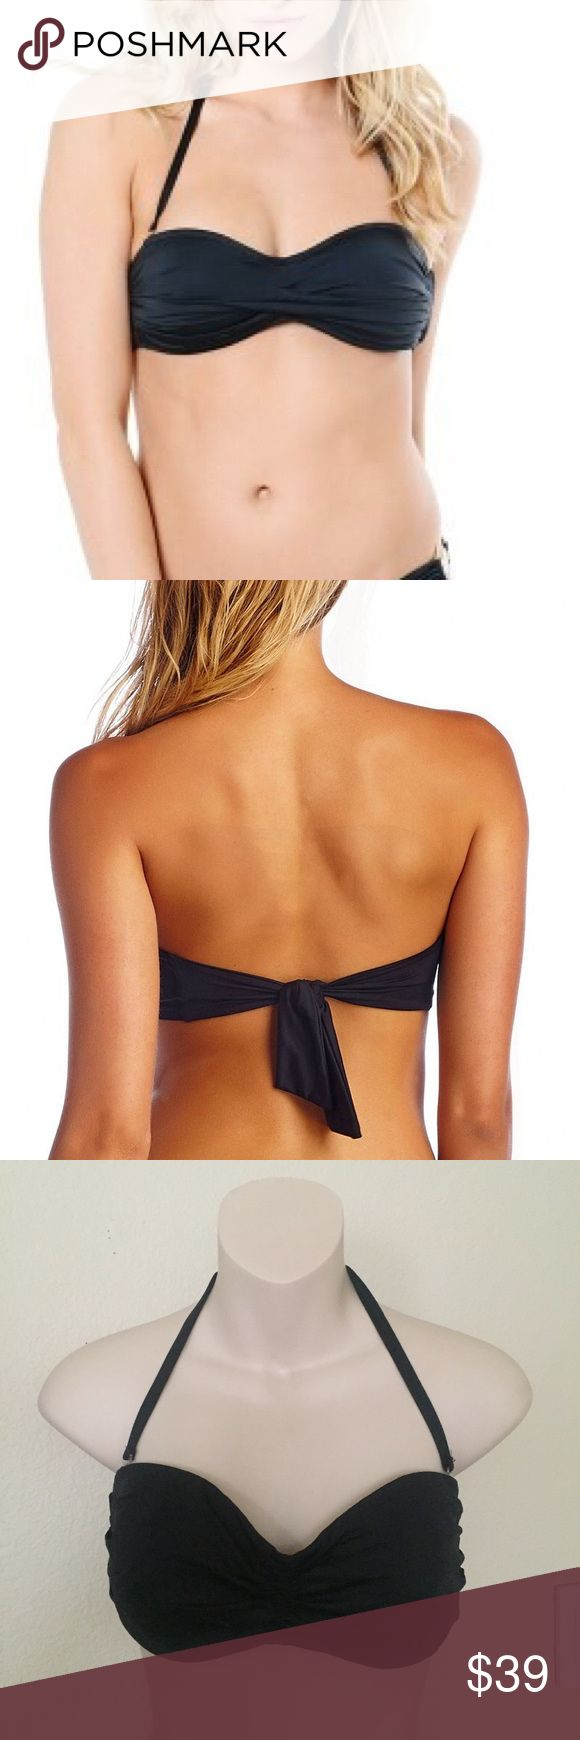 New Vitamin A Black Bandeau Halter Bikini Top L This is a Vitamin A Black ruched bikini top. Size large/extra large. Ties in the back so can fit multiple sizes. Halter strap is detachable. Never worn. Slightly padded. vitamin A Swim Bikinis